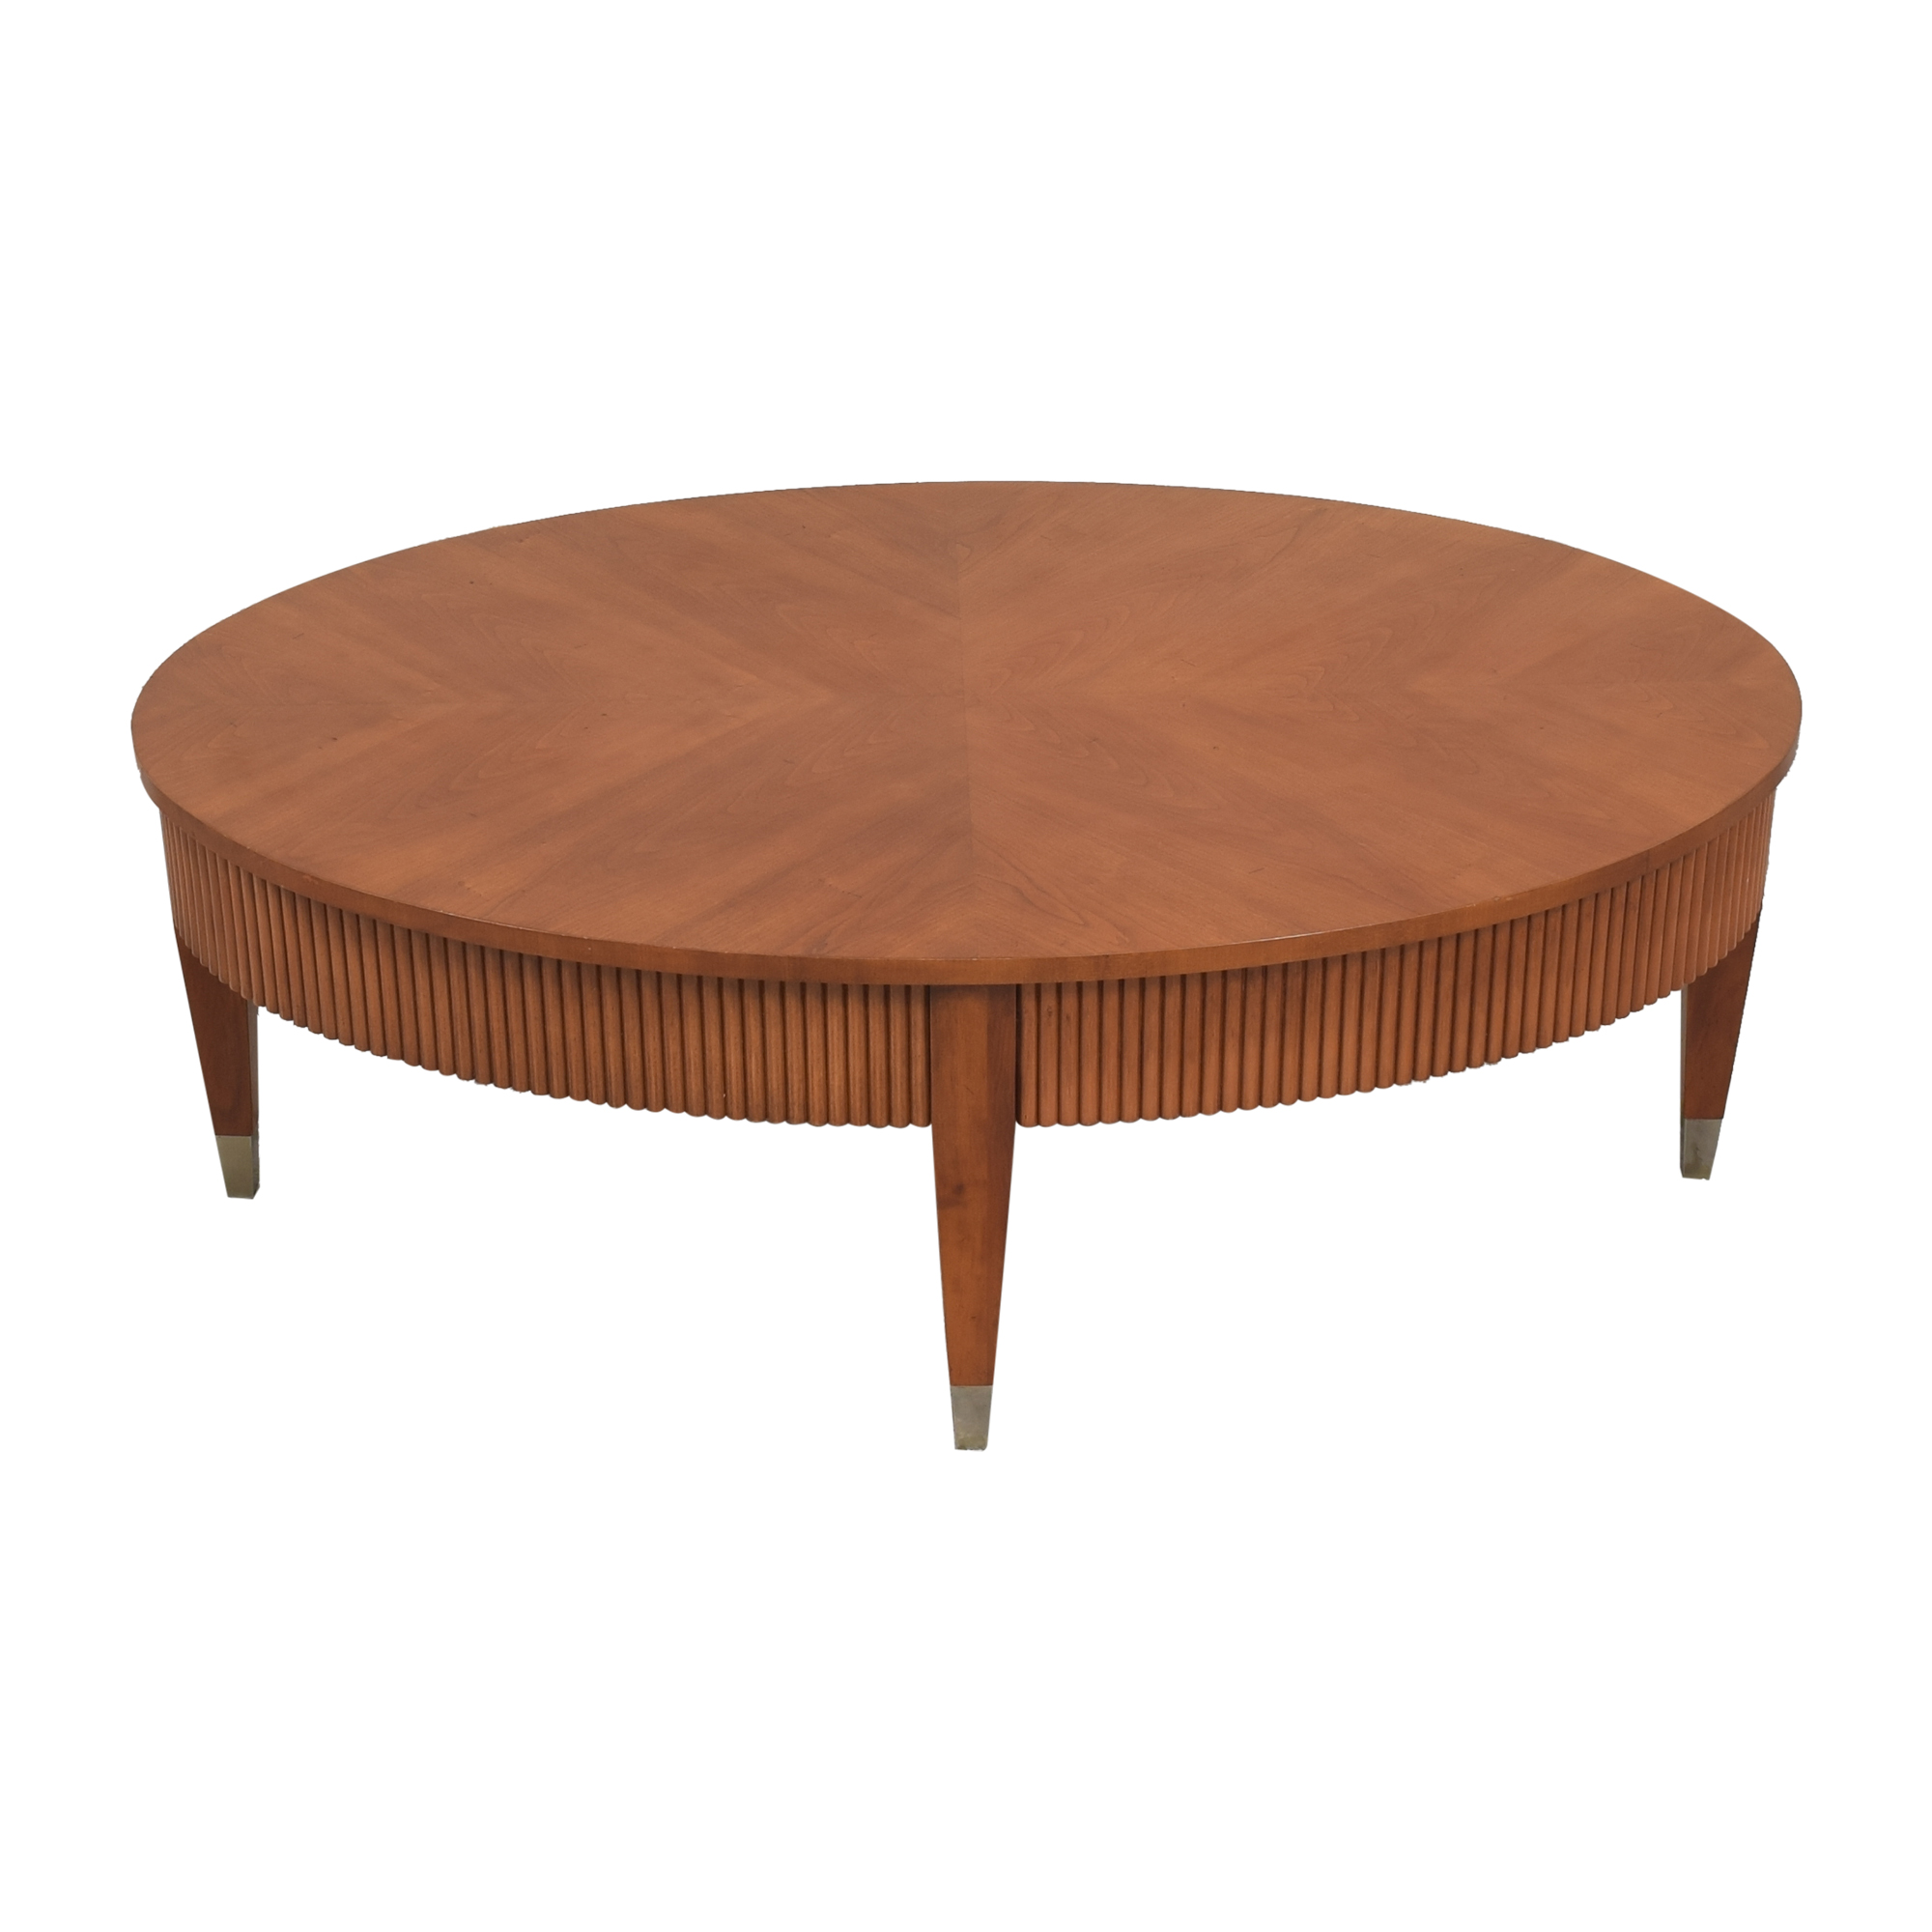 Ethan Allen Ethan Allen Avenue Oval Coffee Table dimensions